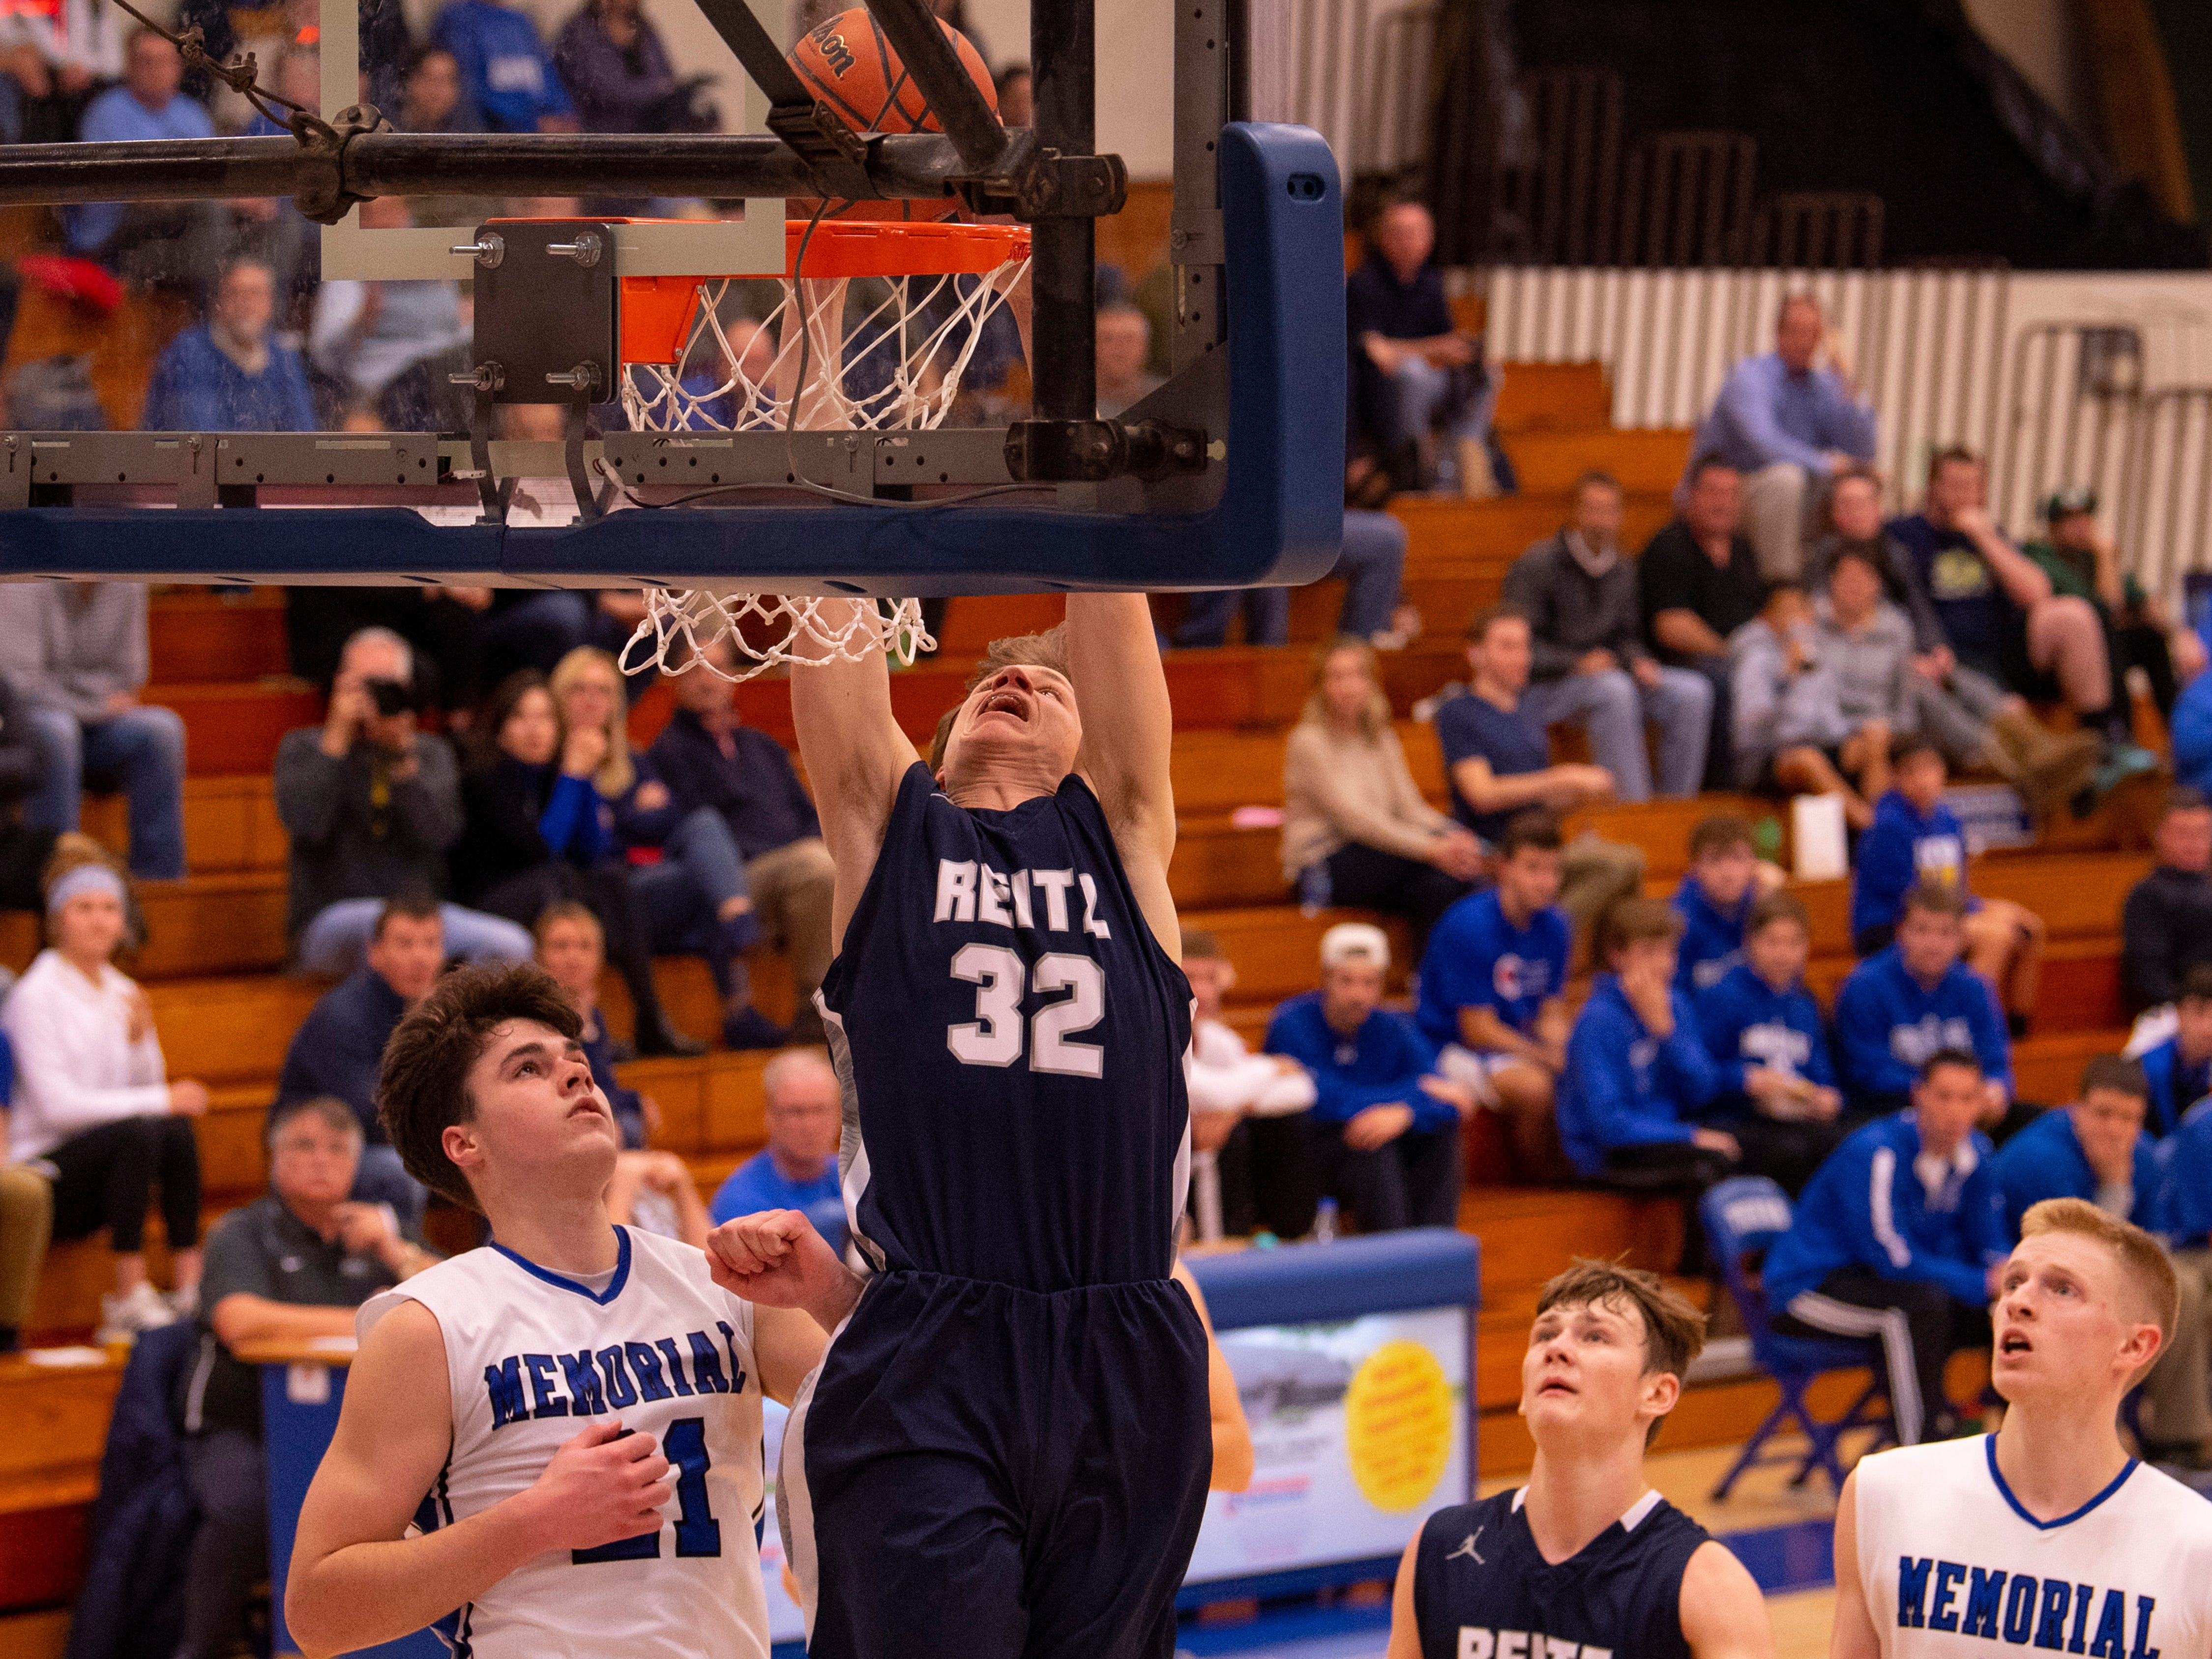 Reitz's Ethan Higgs (32) dunks against Memorial in the first round of the SIAC Tournament at Memorial High School Tuesday night.